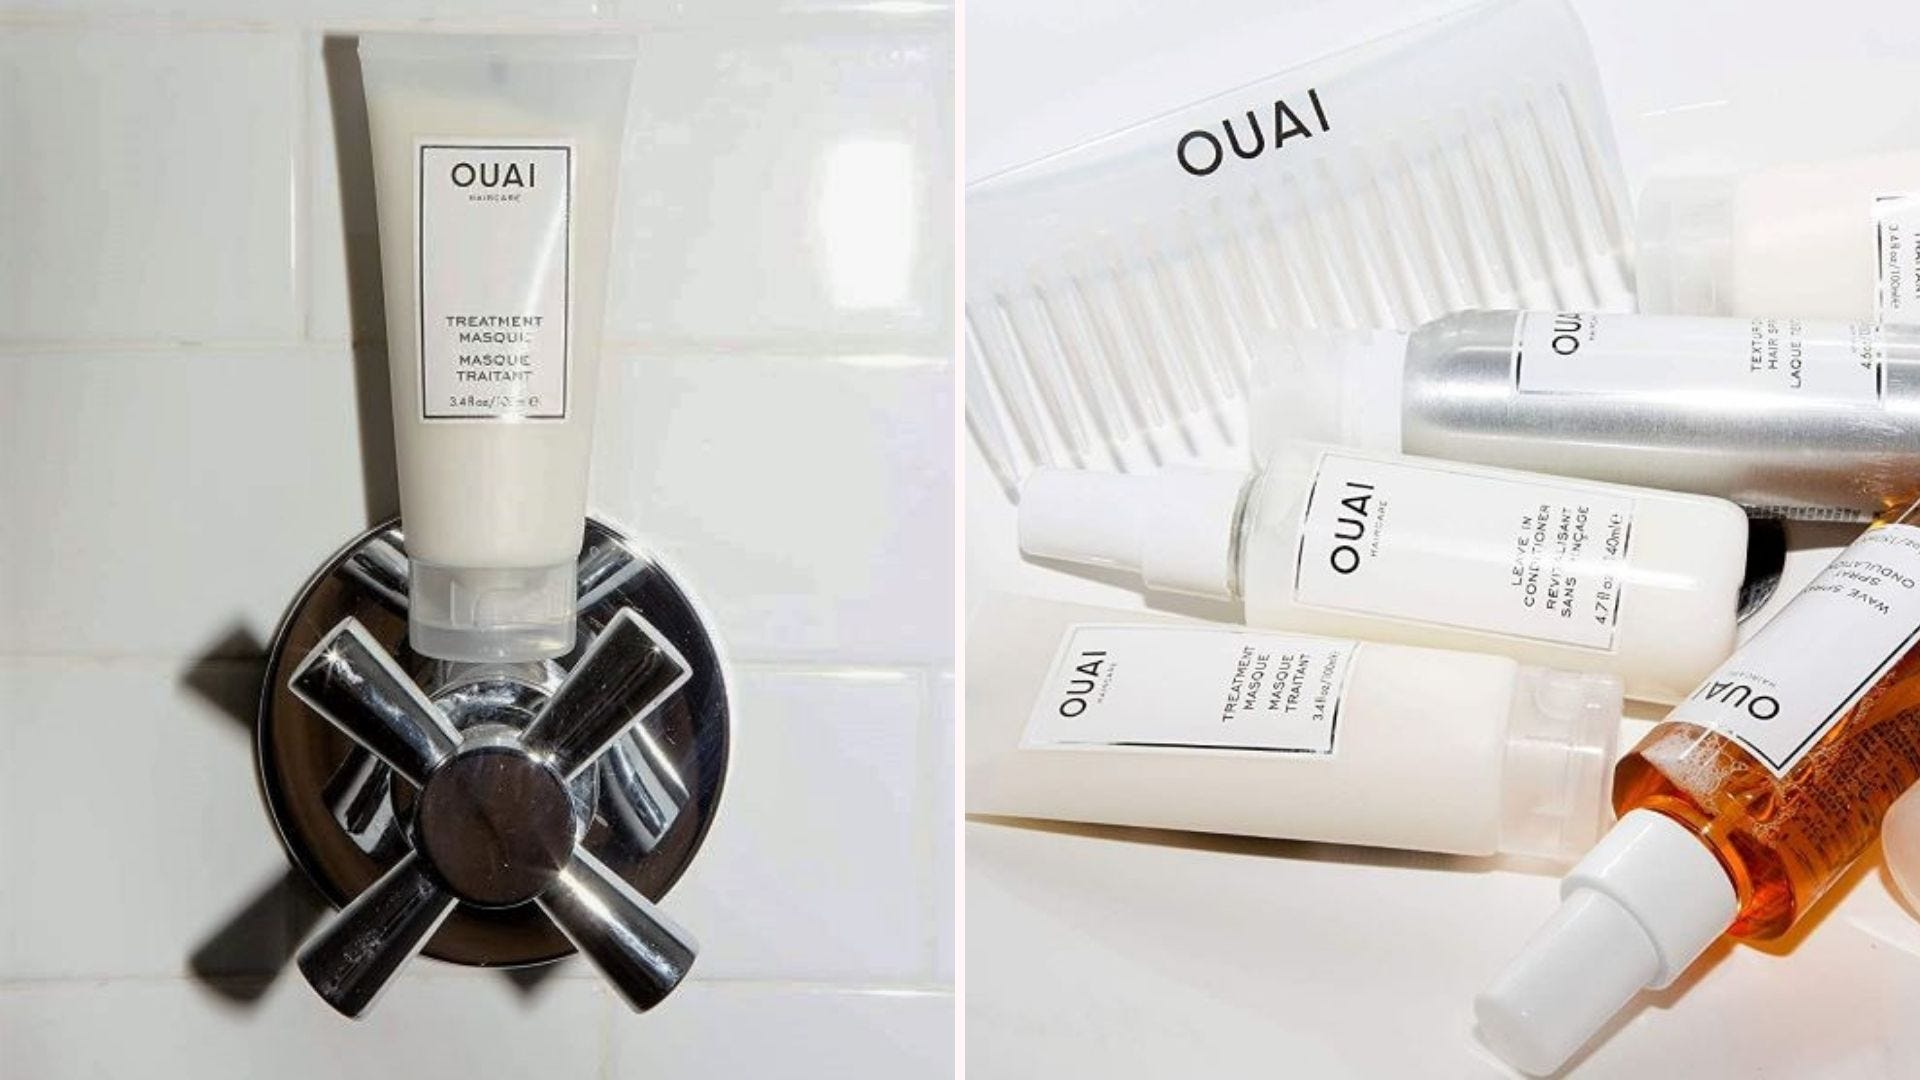 A tube of OUAI Treatment Masque sitting on a shower faucet and the whole line of OUAI haircare products lying on a counter.